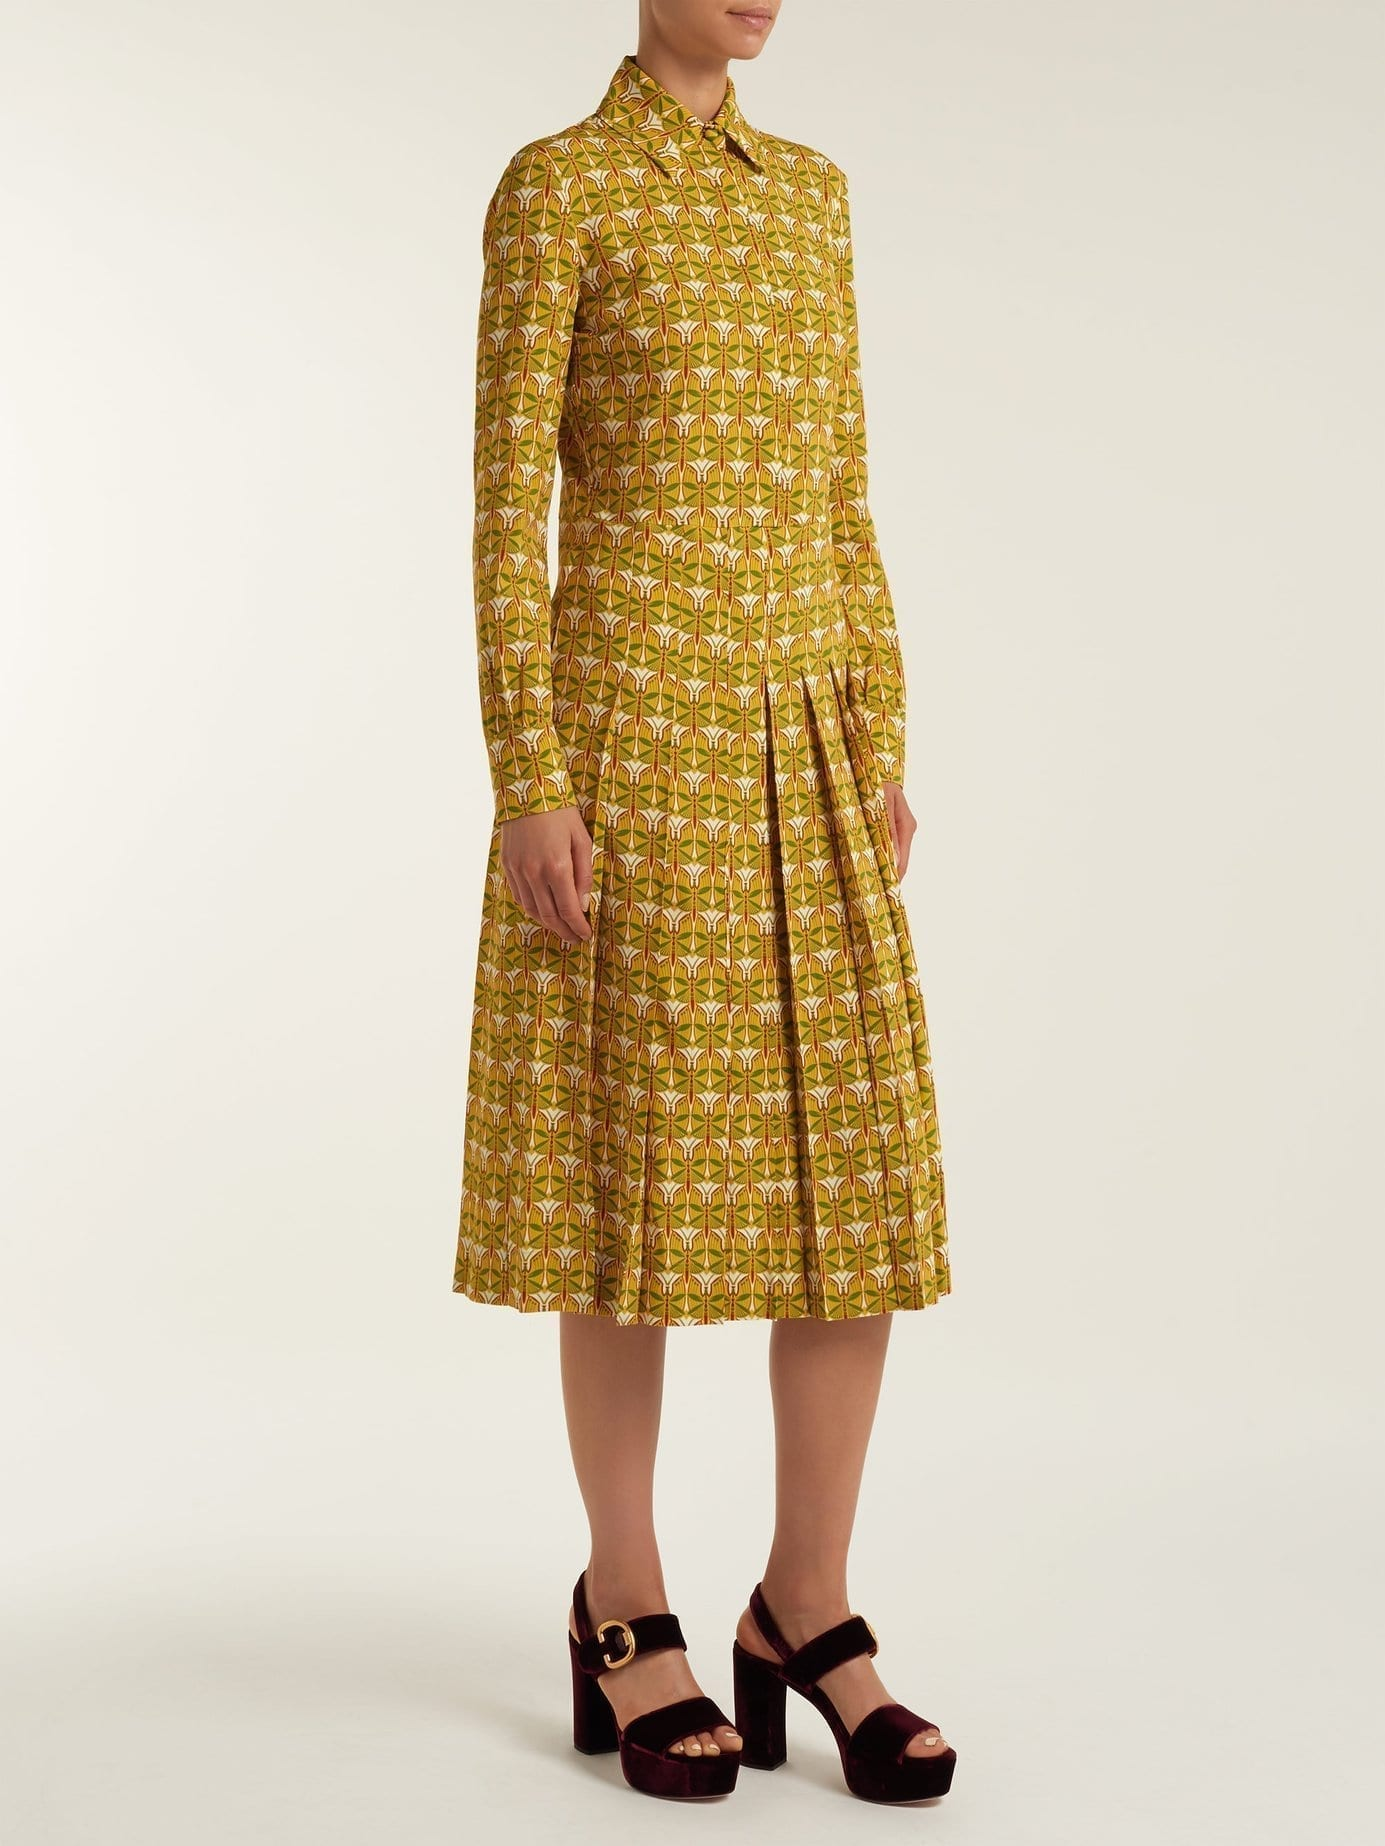 LA DOUBLEJ EDITIONS Chemisier Libellule Print Pleated Shirt Yellow Dress